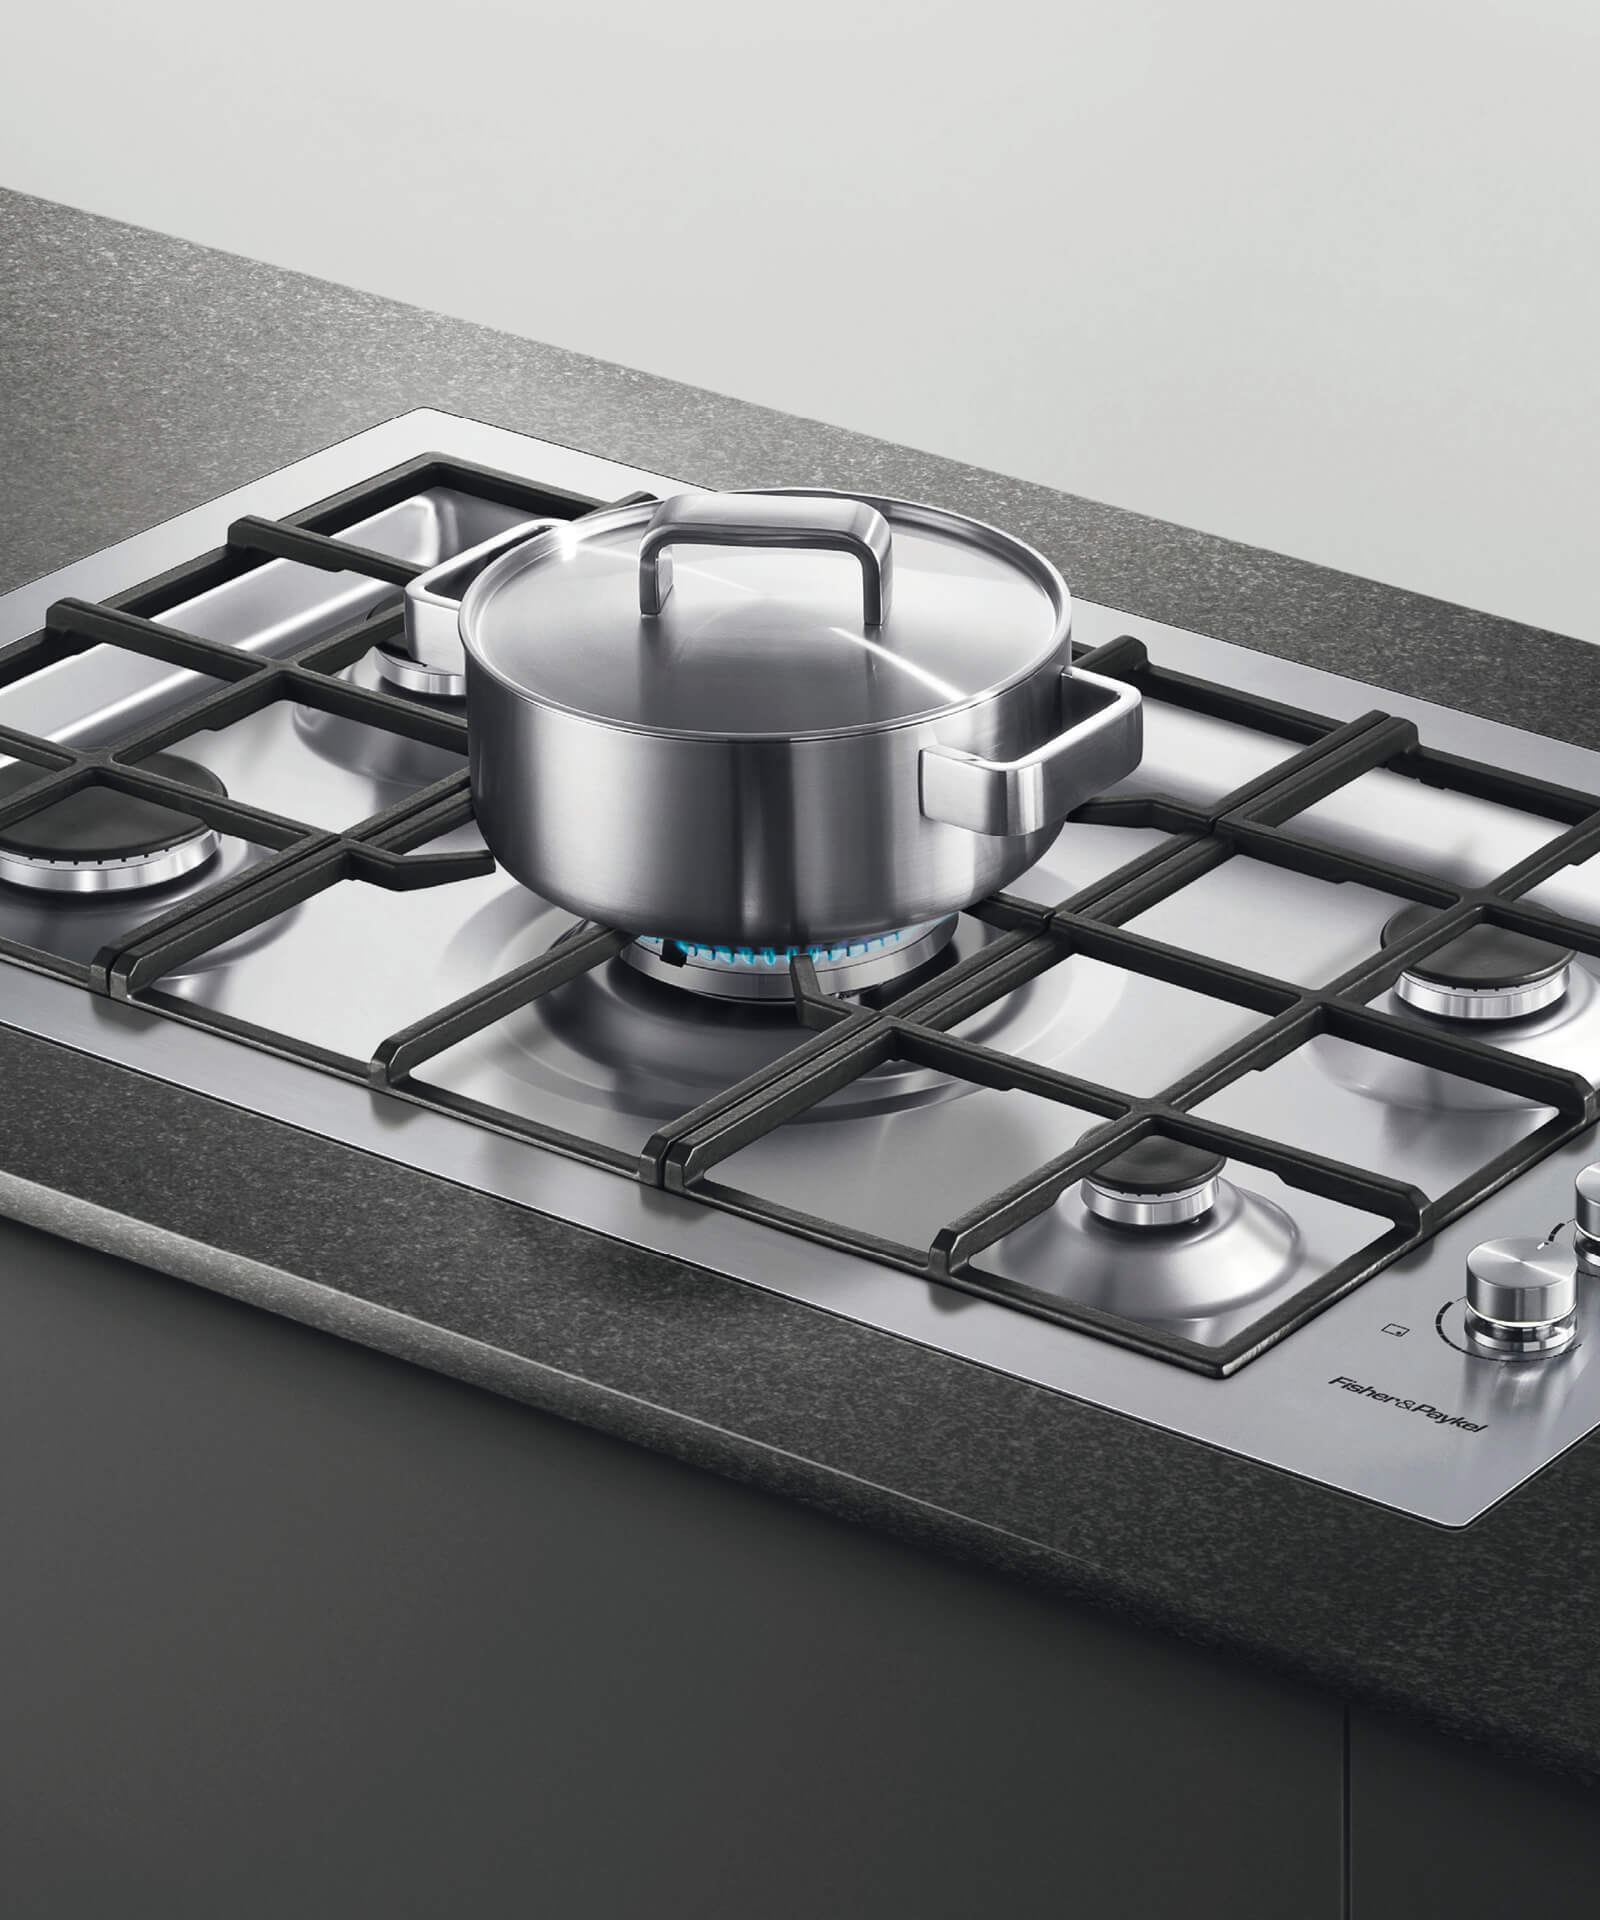 Kitchen Shop Bundall Cg905dwlpfcx3 90cm Flush Gas On Steel Cooktop